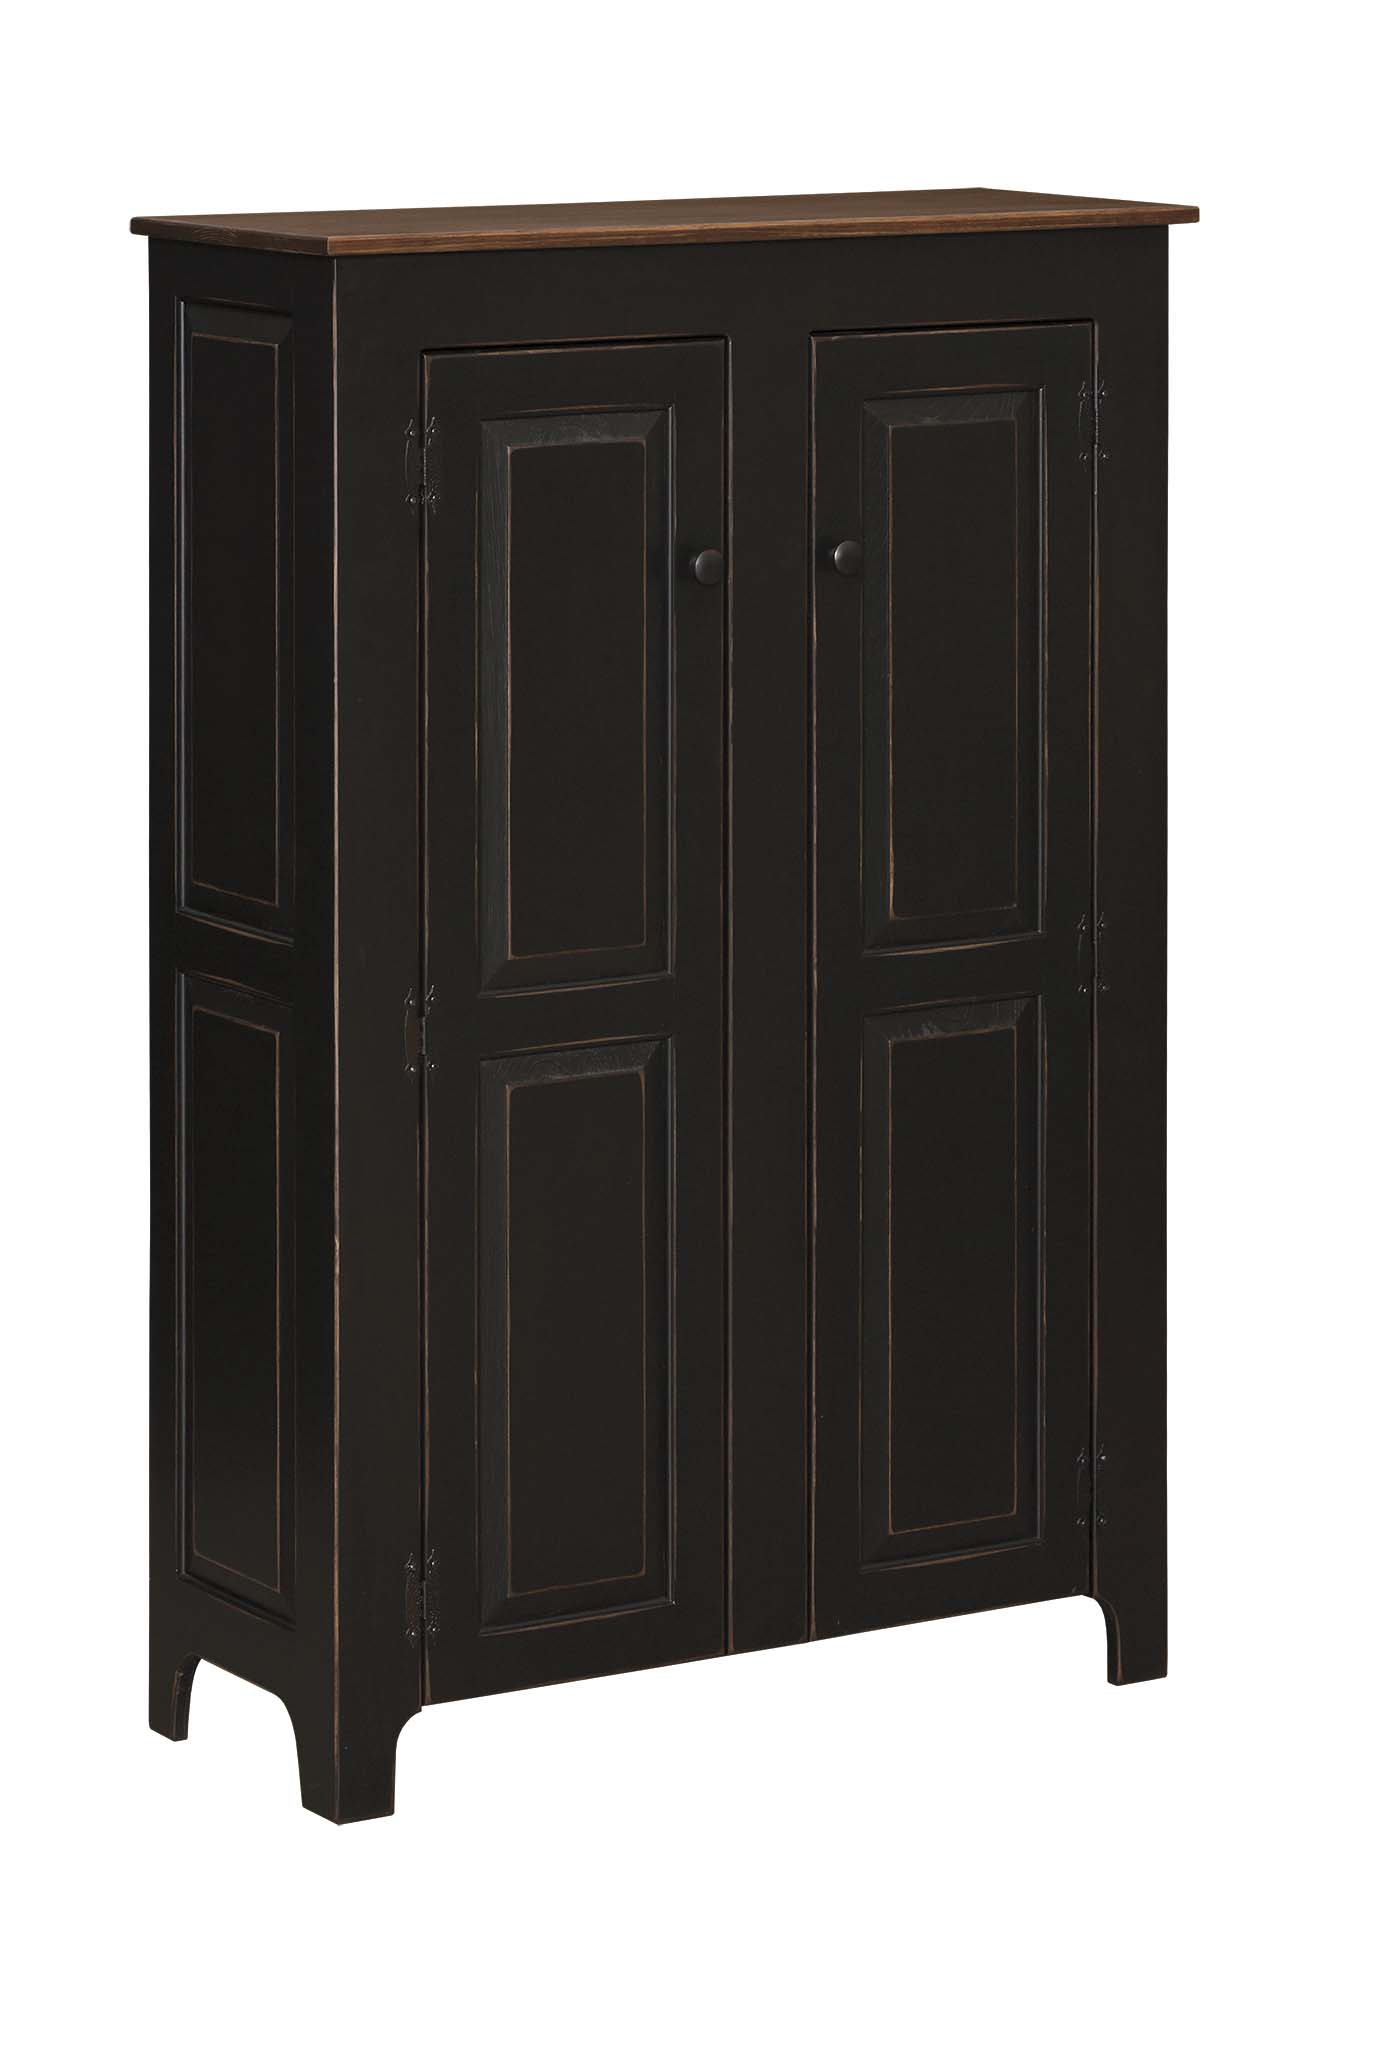 Jelly Cupboard  Amish Furniture Connections  Amish Furniture Connections